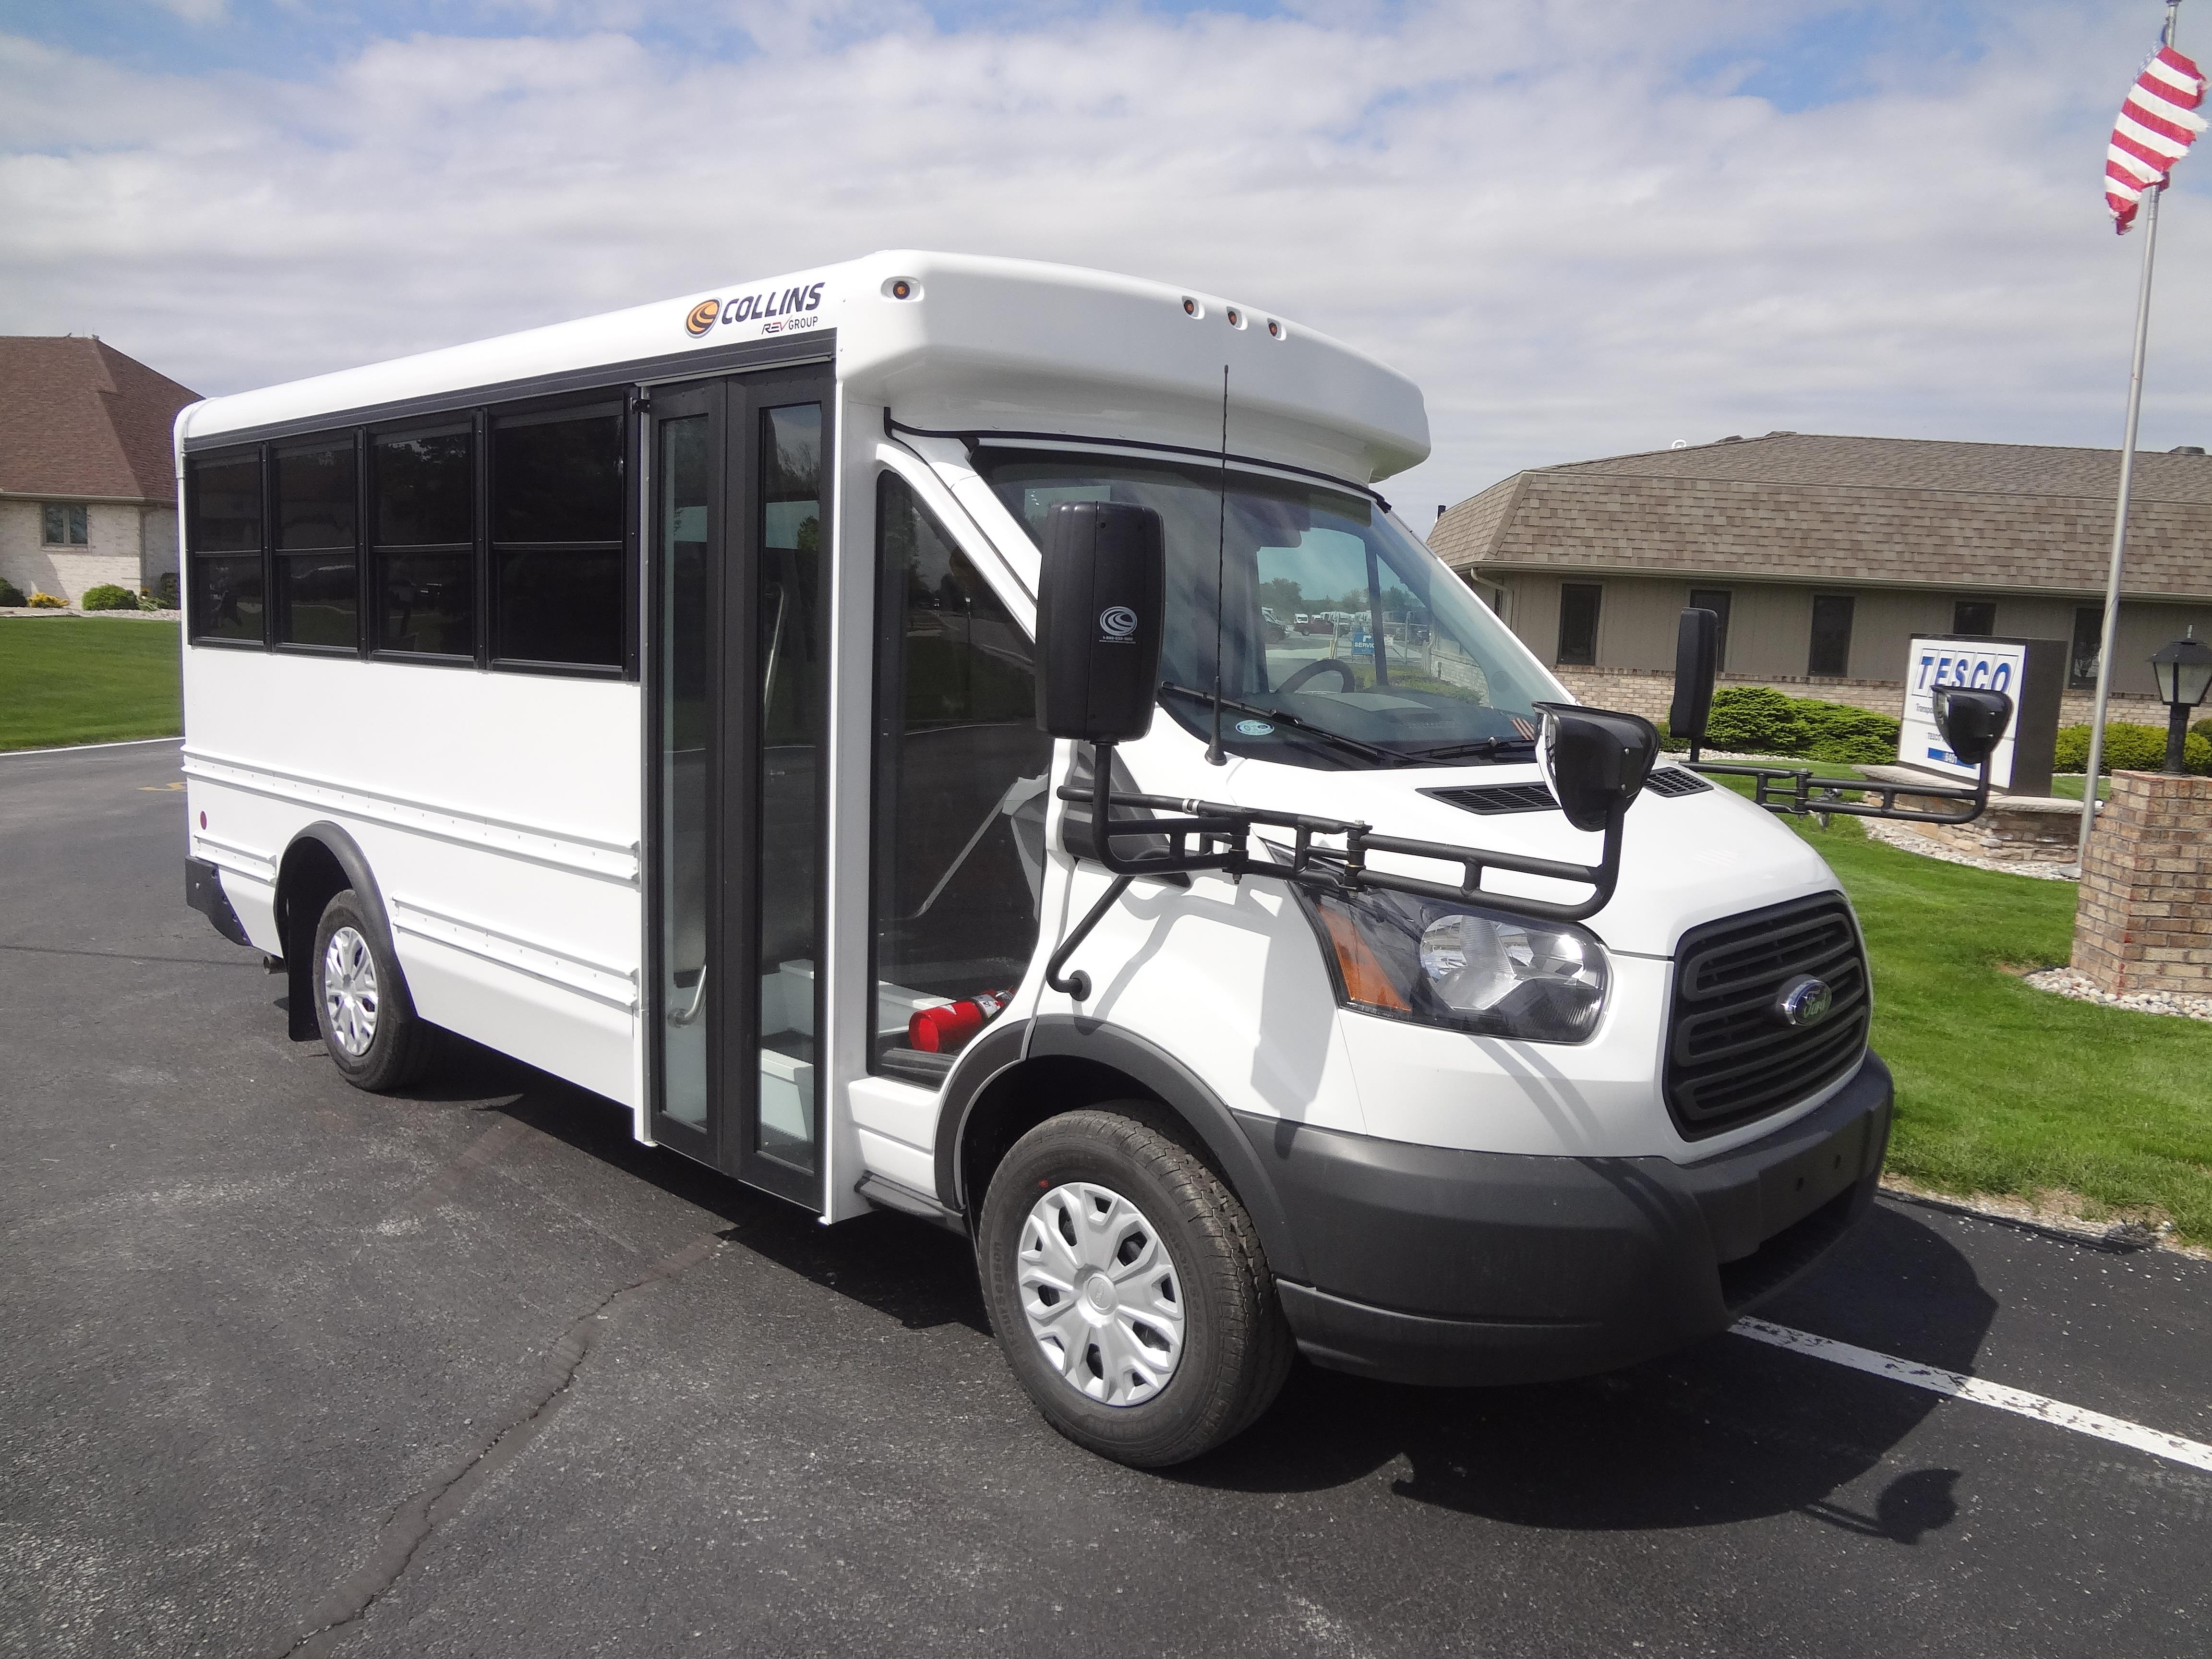 2017 Collins Nexbus Ford 14 Passengers And 0 Wheelchairs